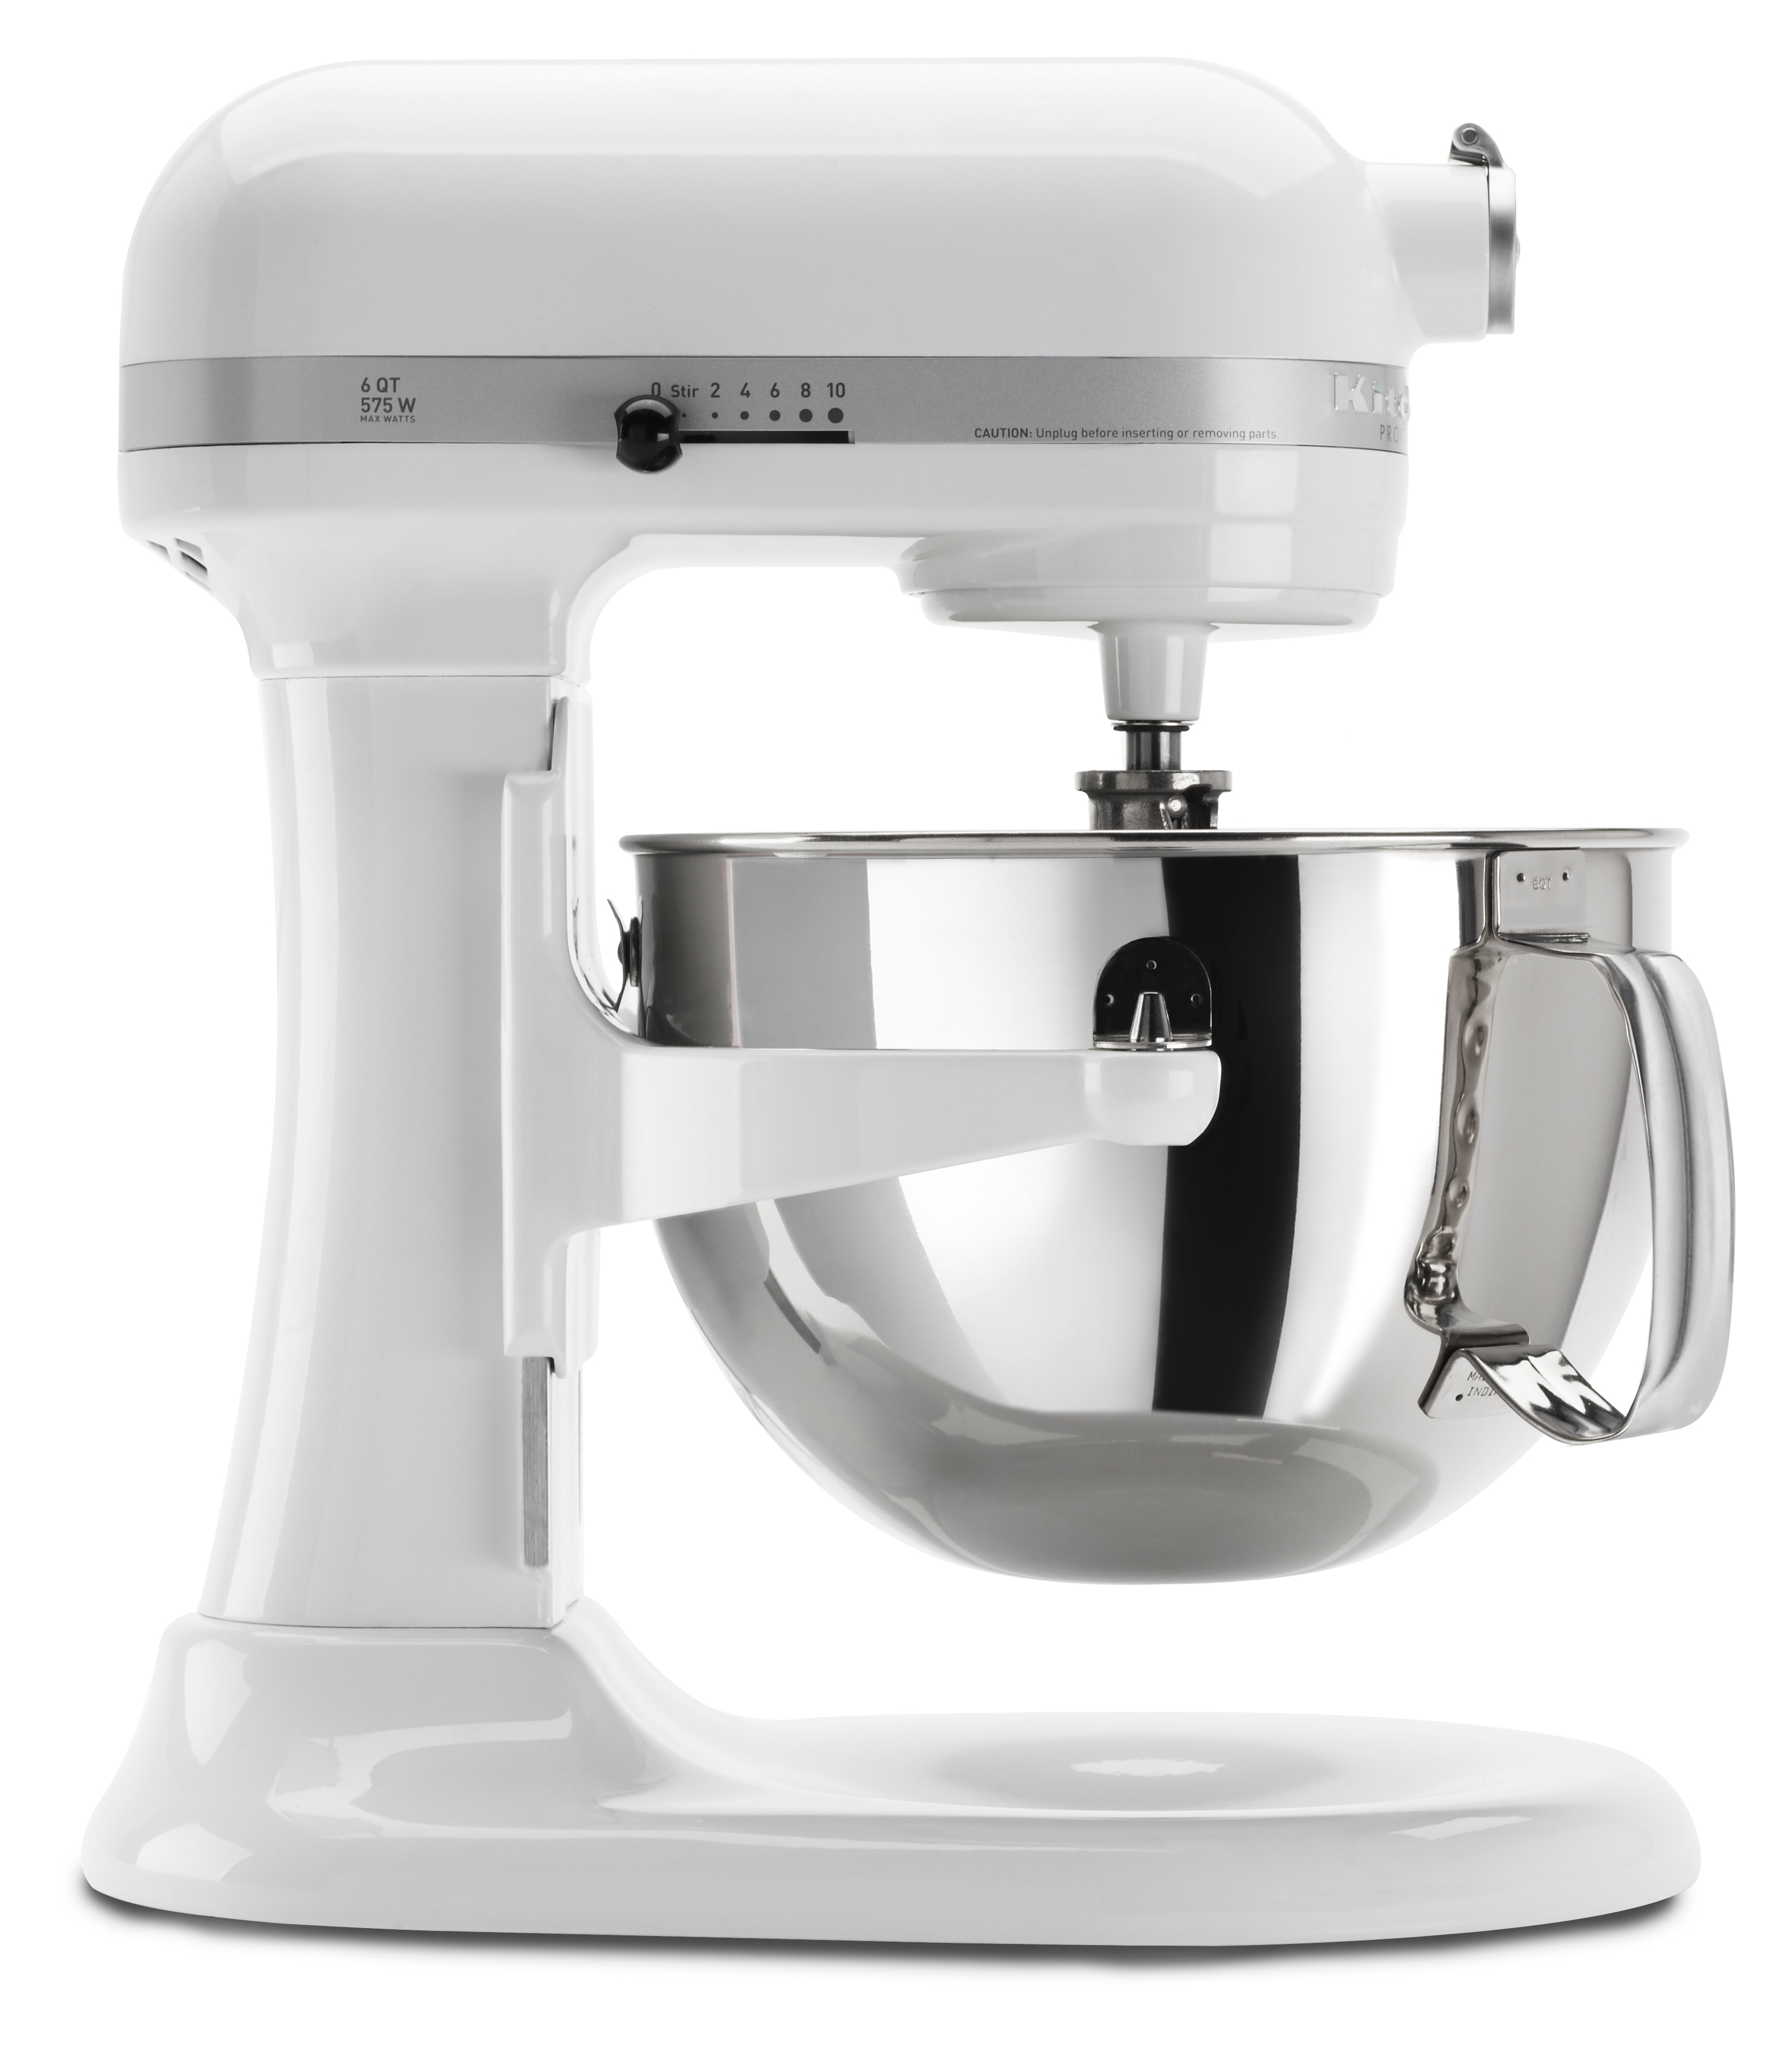 Kitchenaid Batteur Sur Socle Online Shopping For Canadians